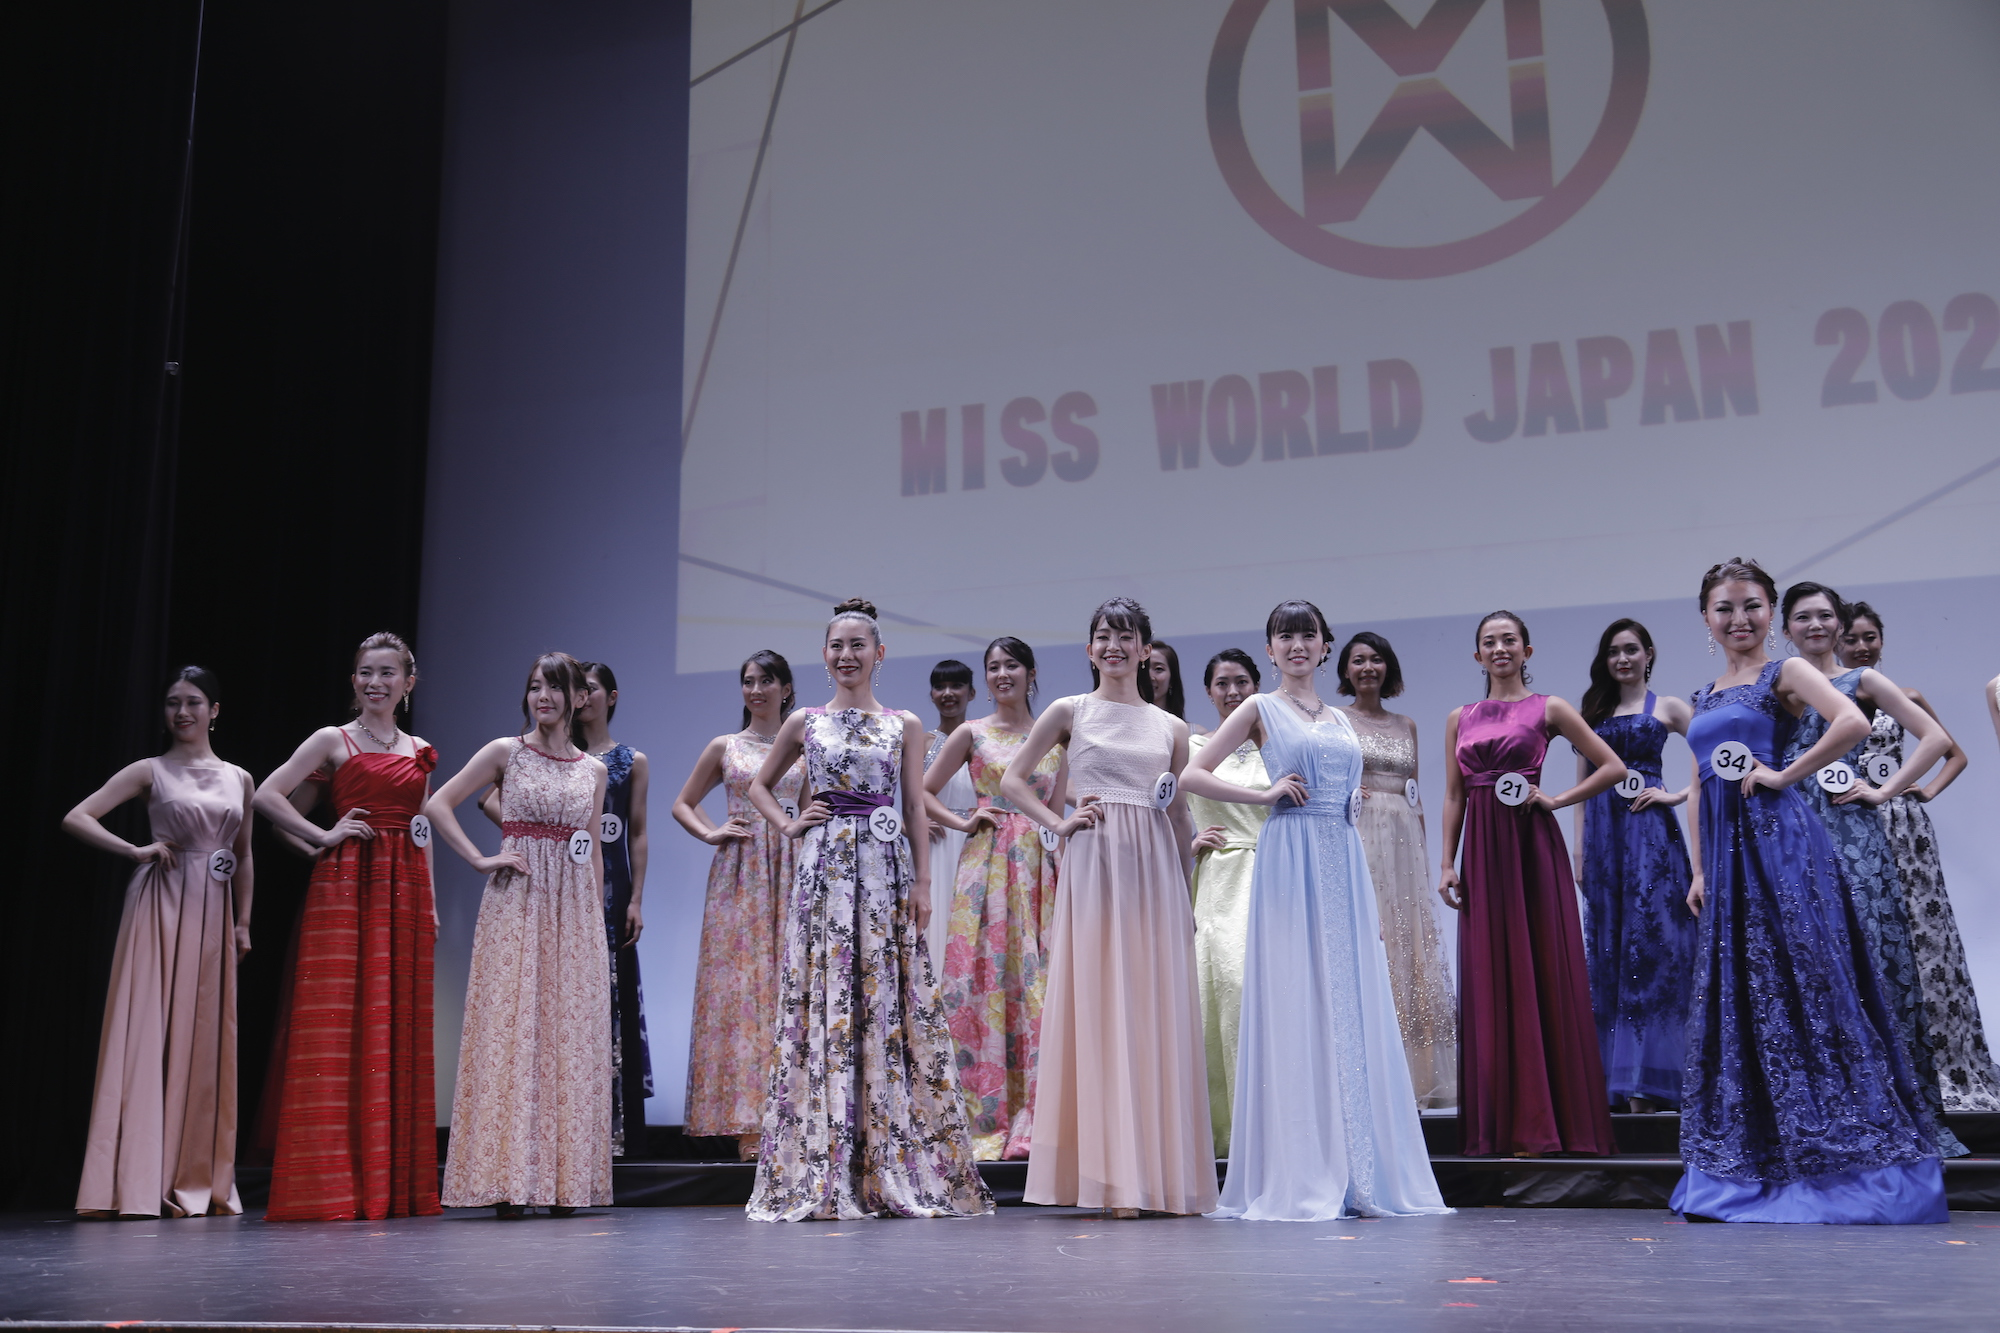 MISS WORLD JAPAN 2020